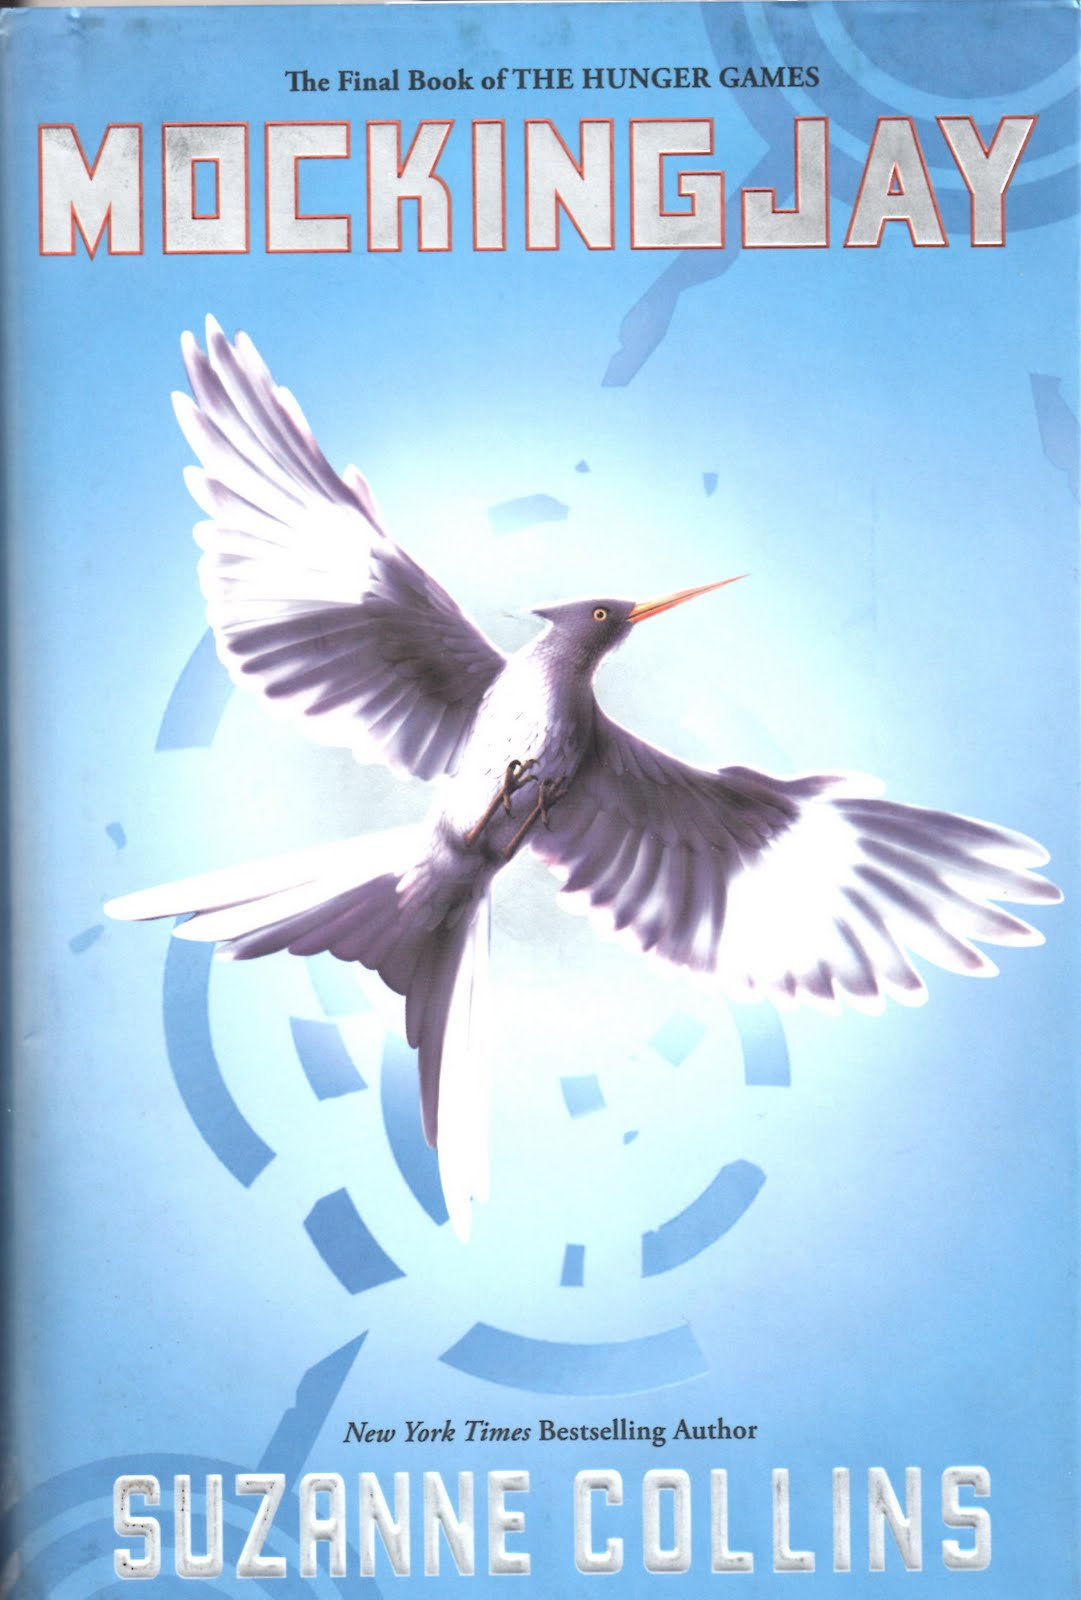 """mockingjay book review essay A summary of the action and science fiction novel by suzanne collins, """"the  hunger games"""" it was first published in 2008, and its movie version released in ."""